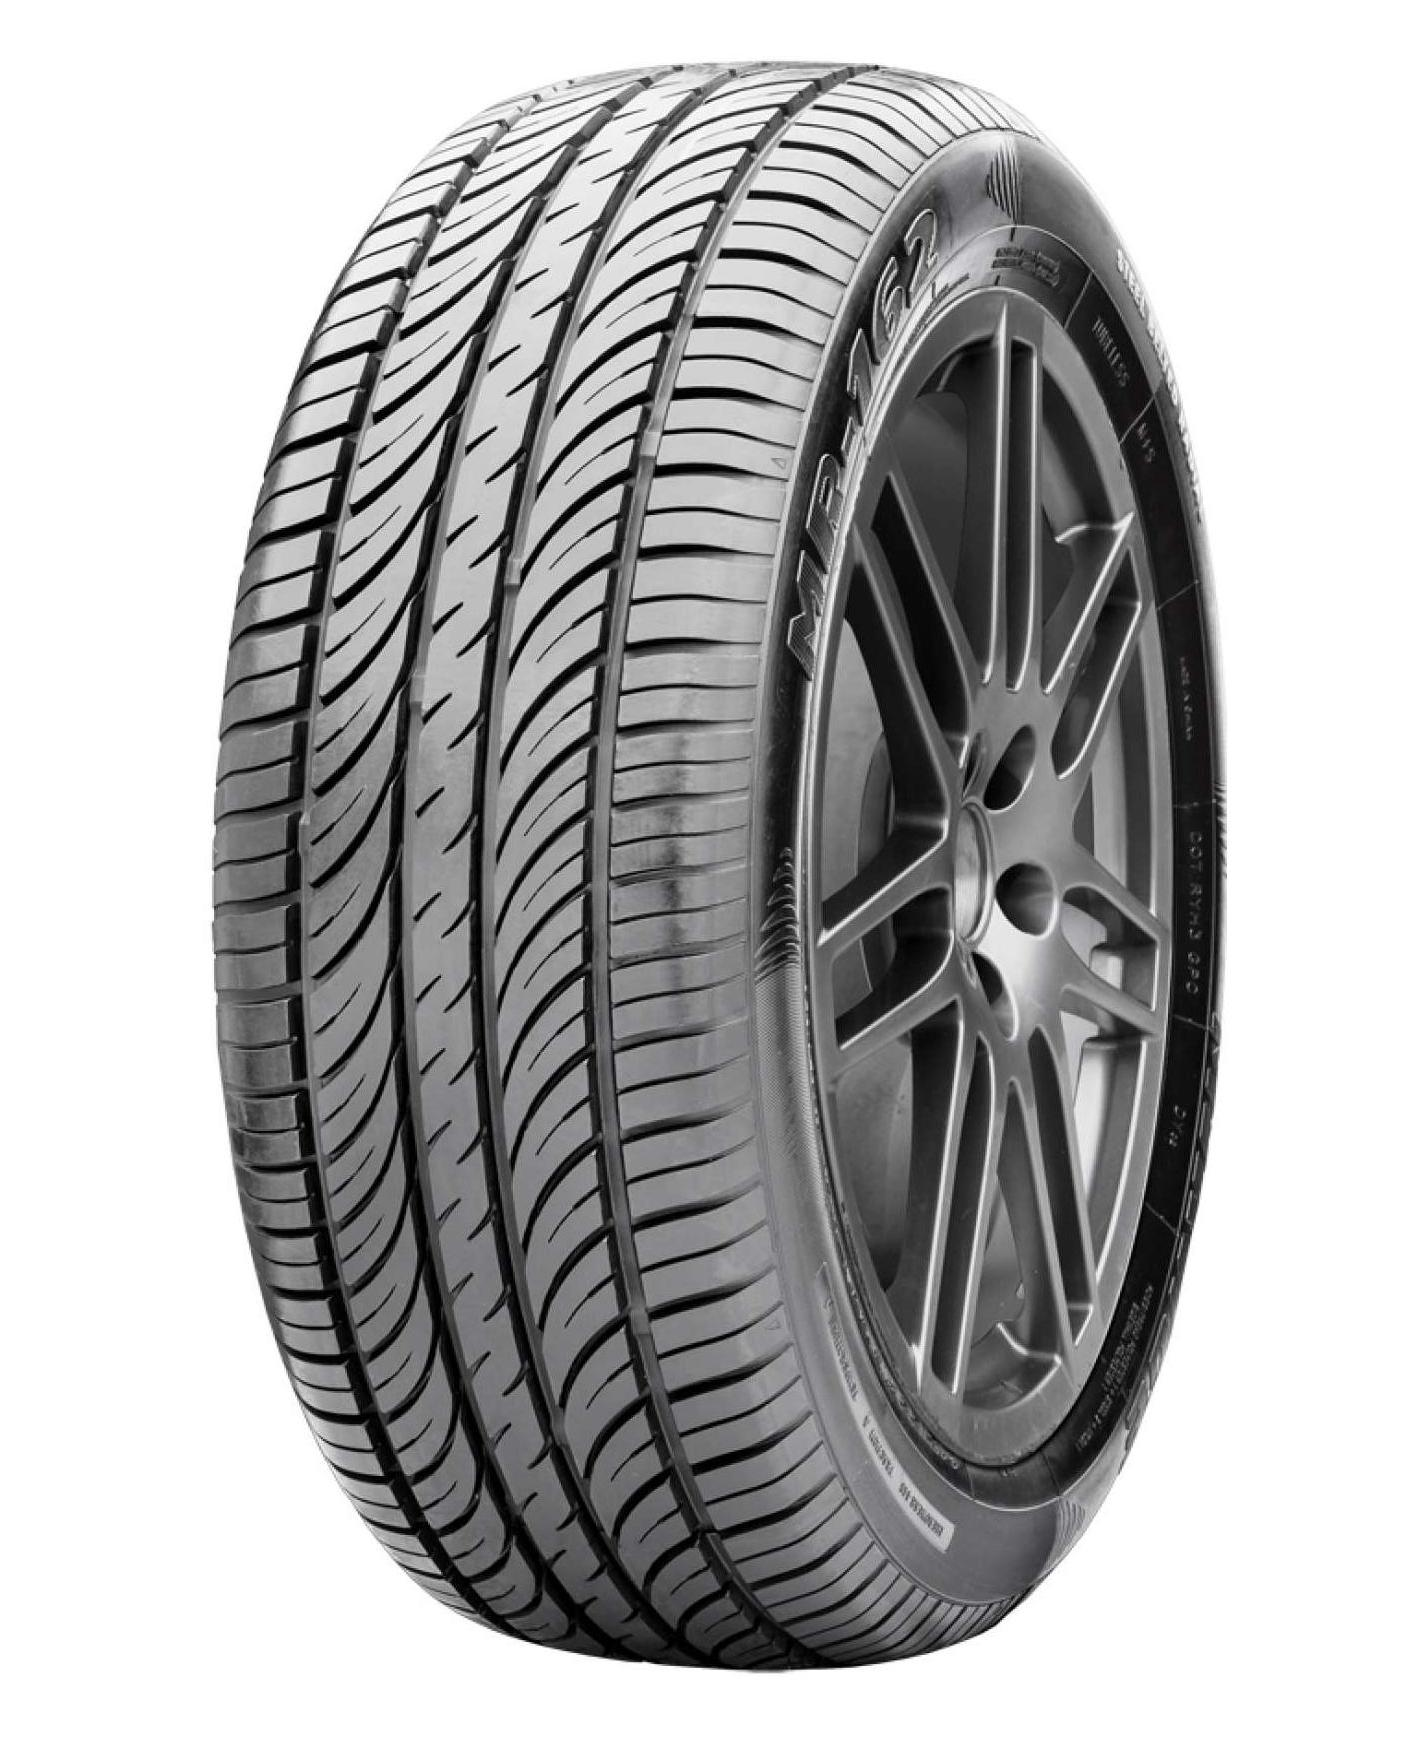 Mirage MR-162 195/65 R15 95H XL